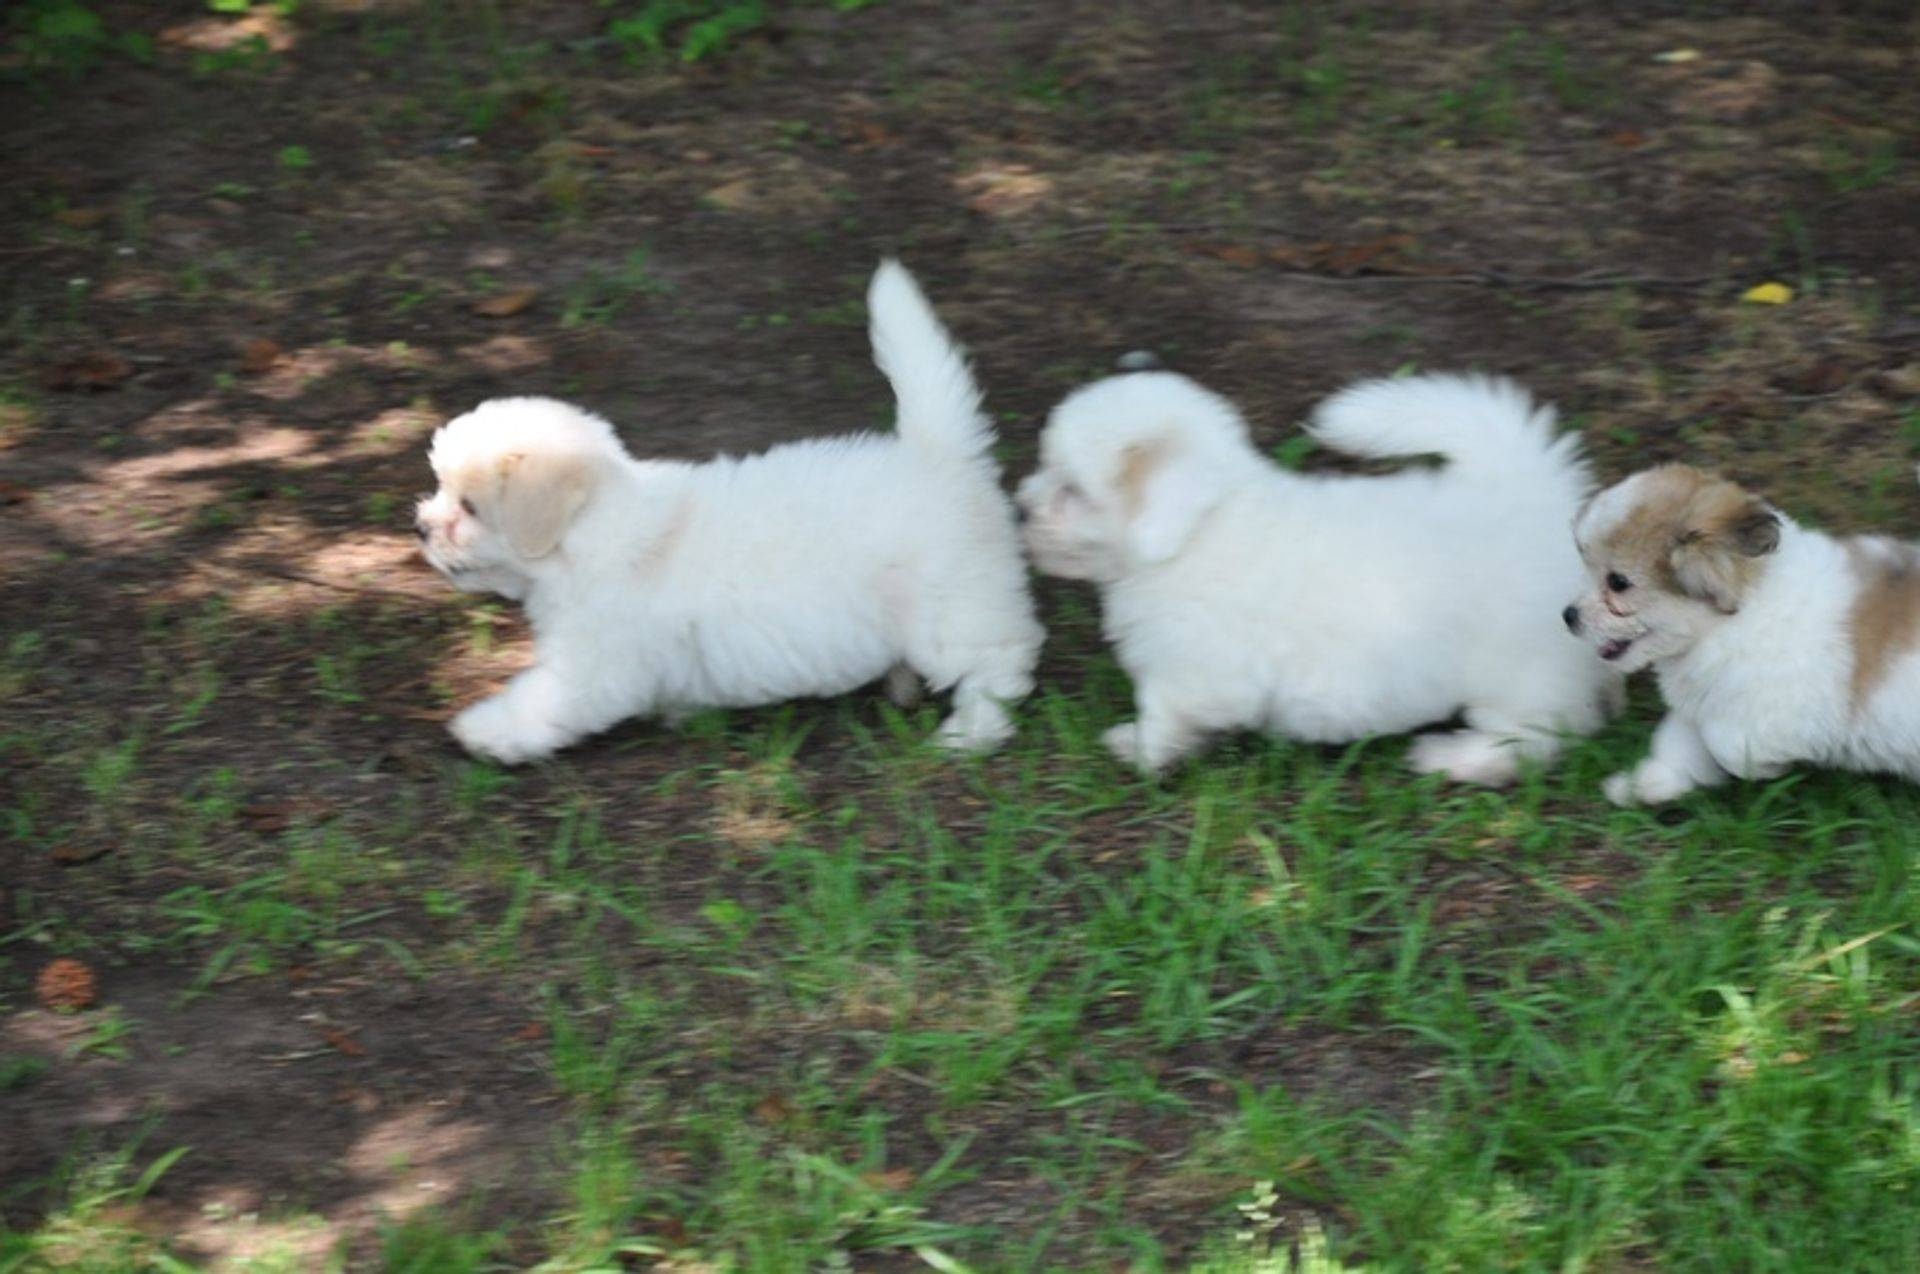 Coton de tulear puppies playing in the grass